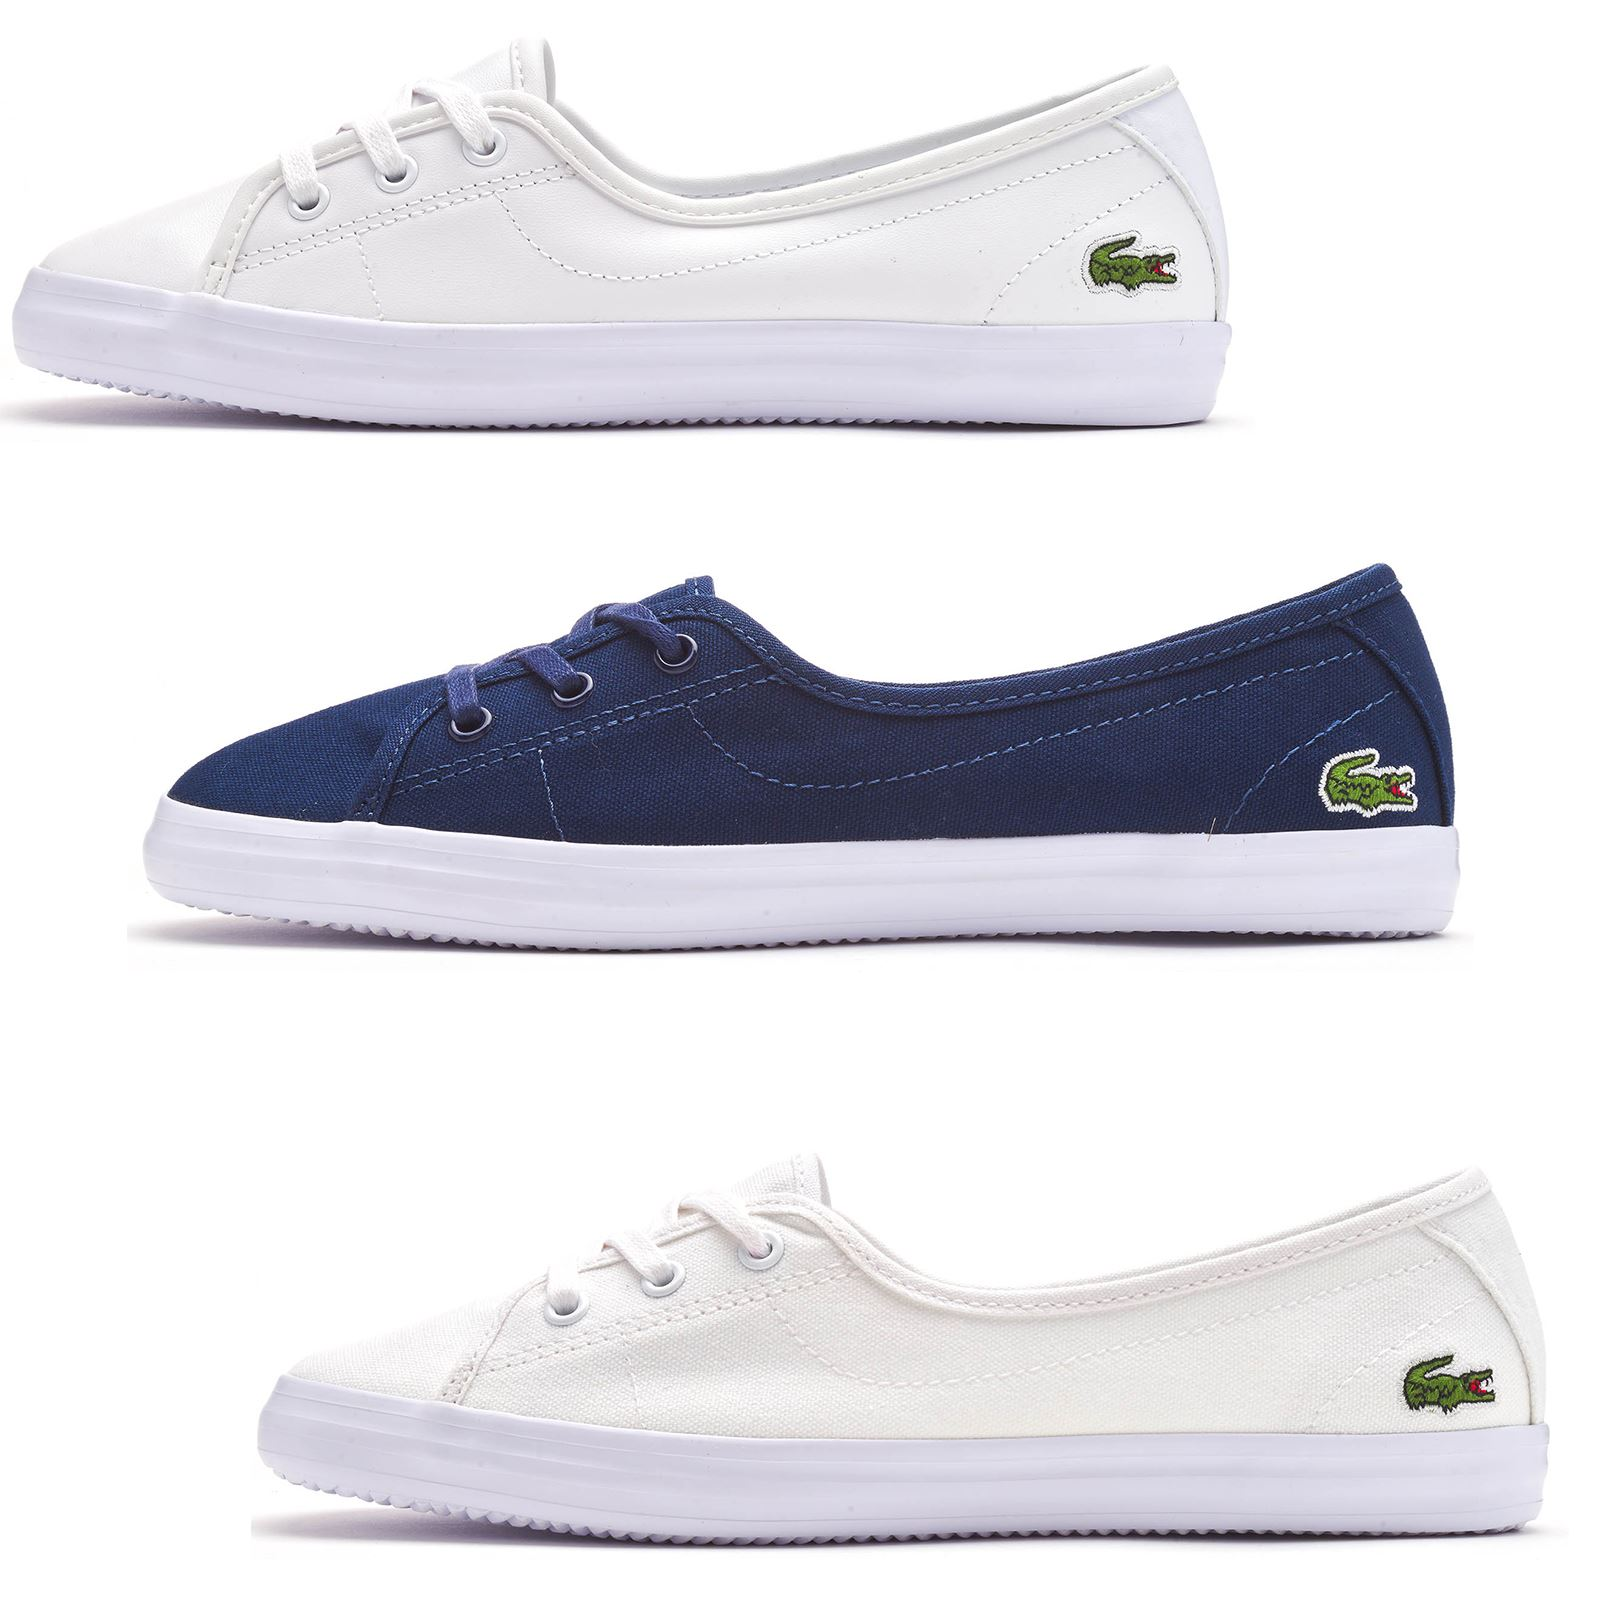 regard détaillé 219cd a49bb Details about Lacoste Ziane Chunky BL 1 & 2 CFA Leather & Canvas Trainers  in White & Navy Blue